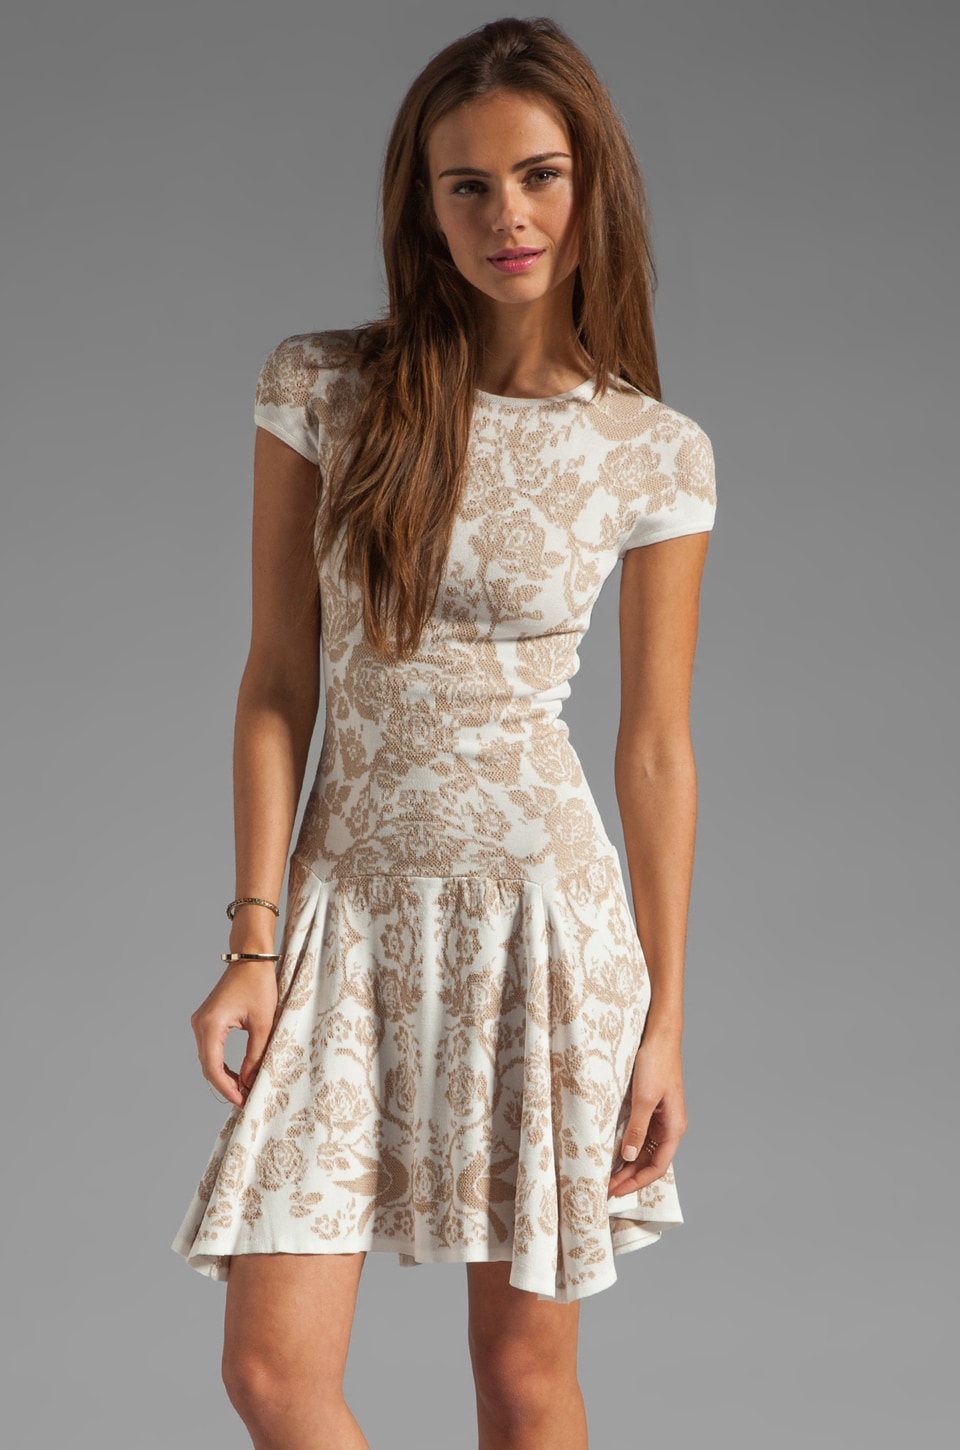 Torn by Ronny Kobo Patricia Dove Dress in White/Nude